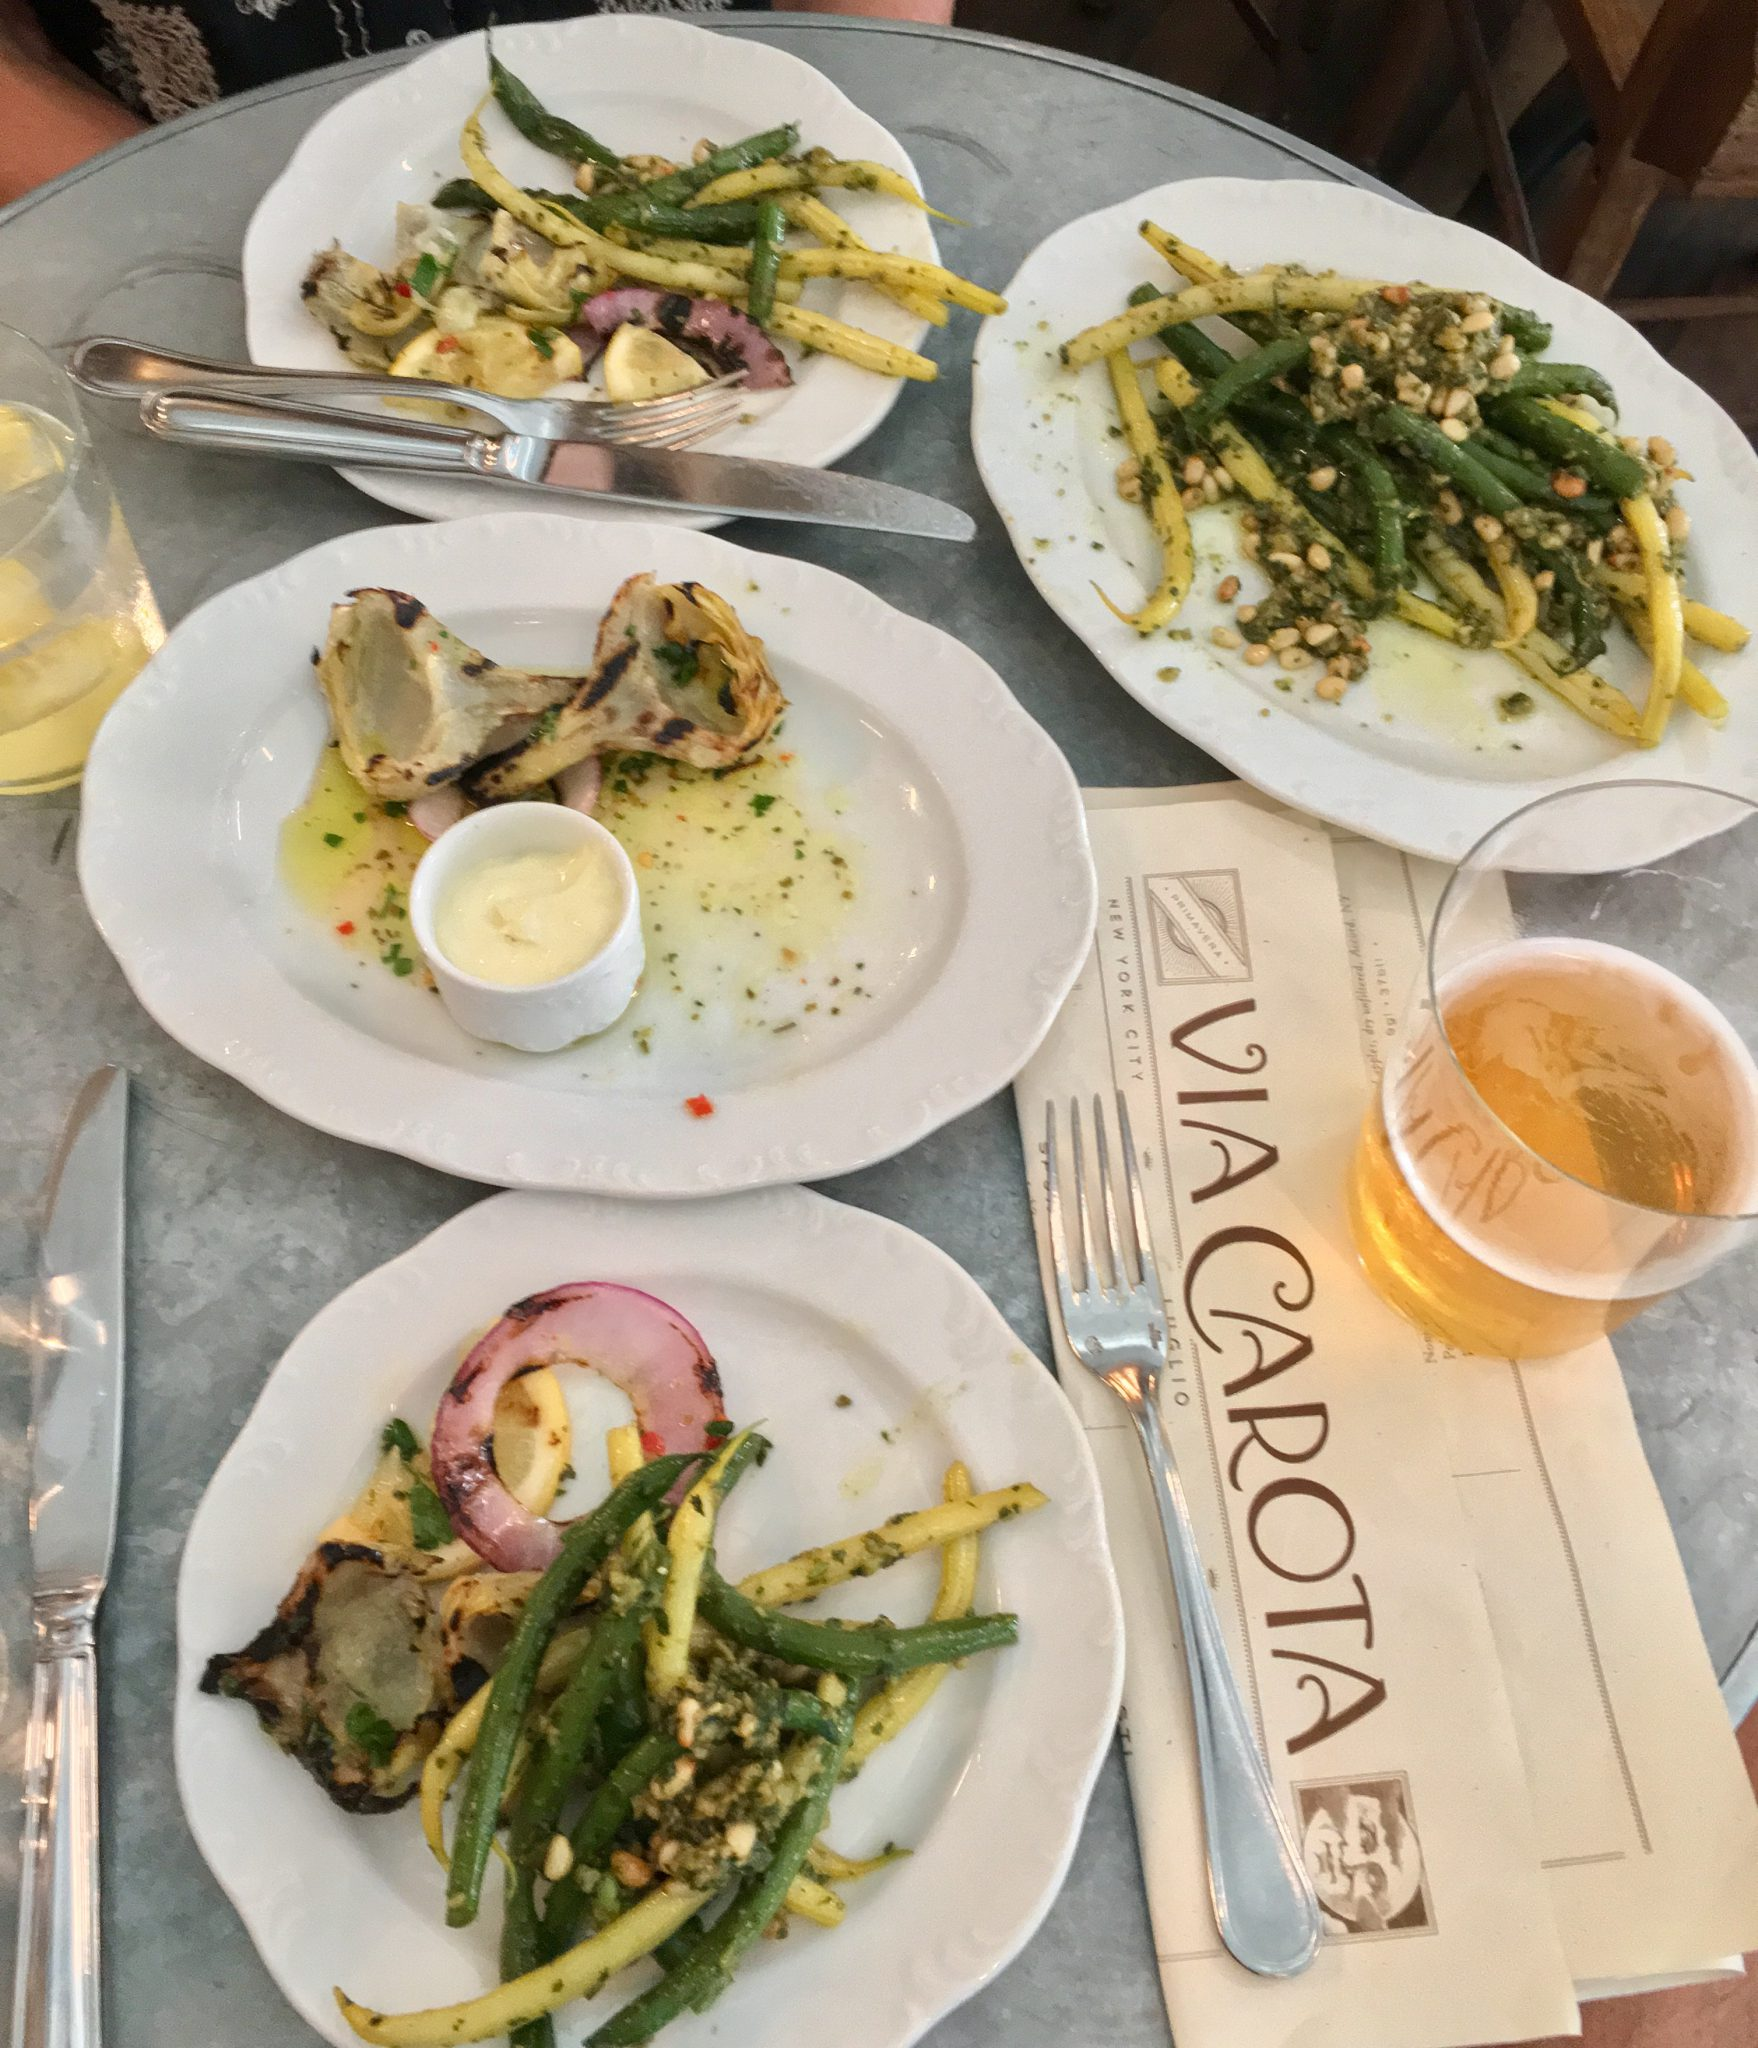 Sumptuous late lunch at Via Carota